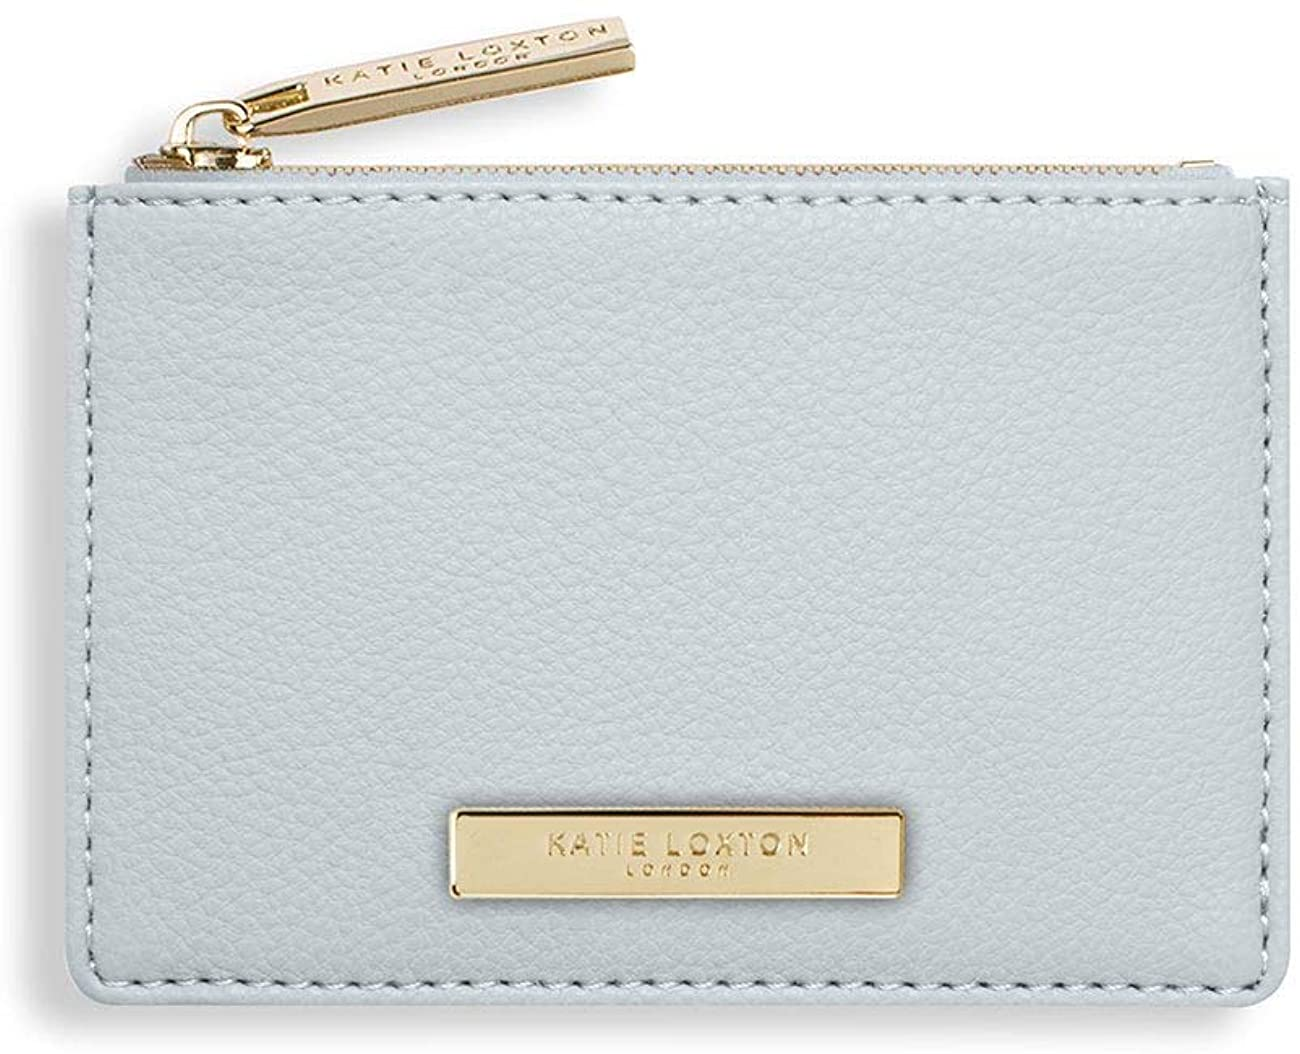 Katie Loxton Alise Womens Small Vegan Leather Zippered Card Holder Wallet